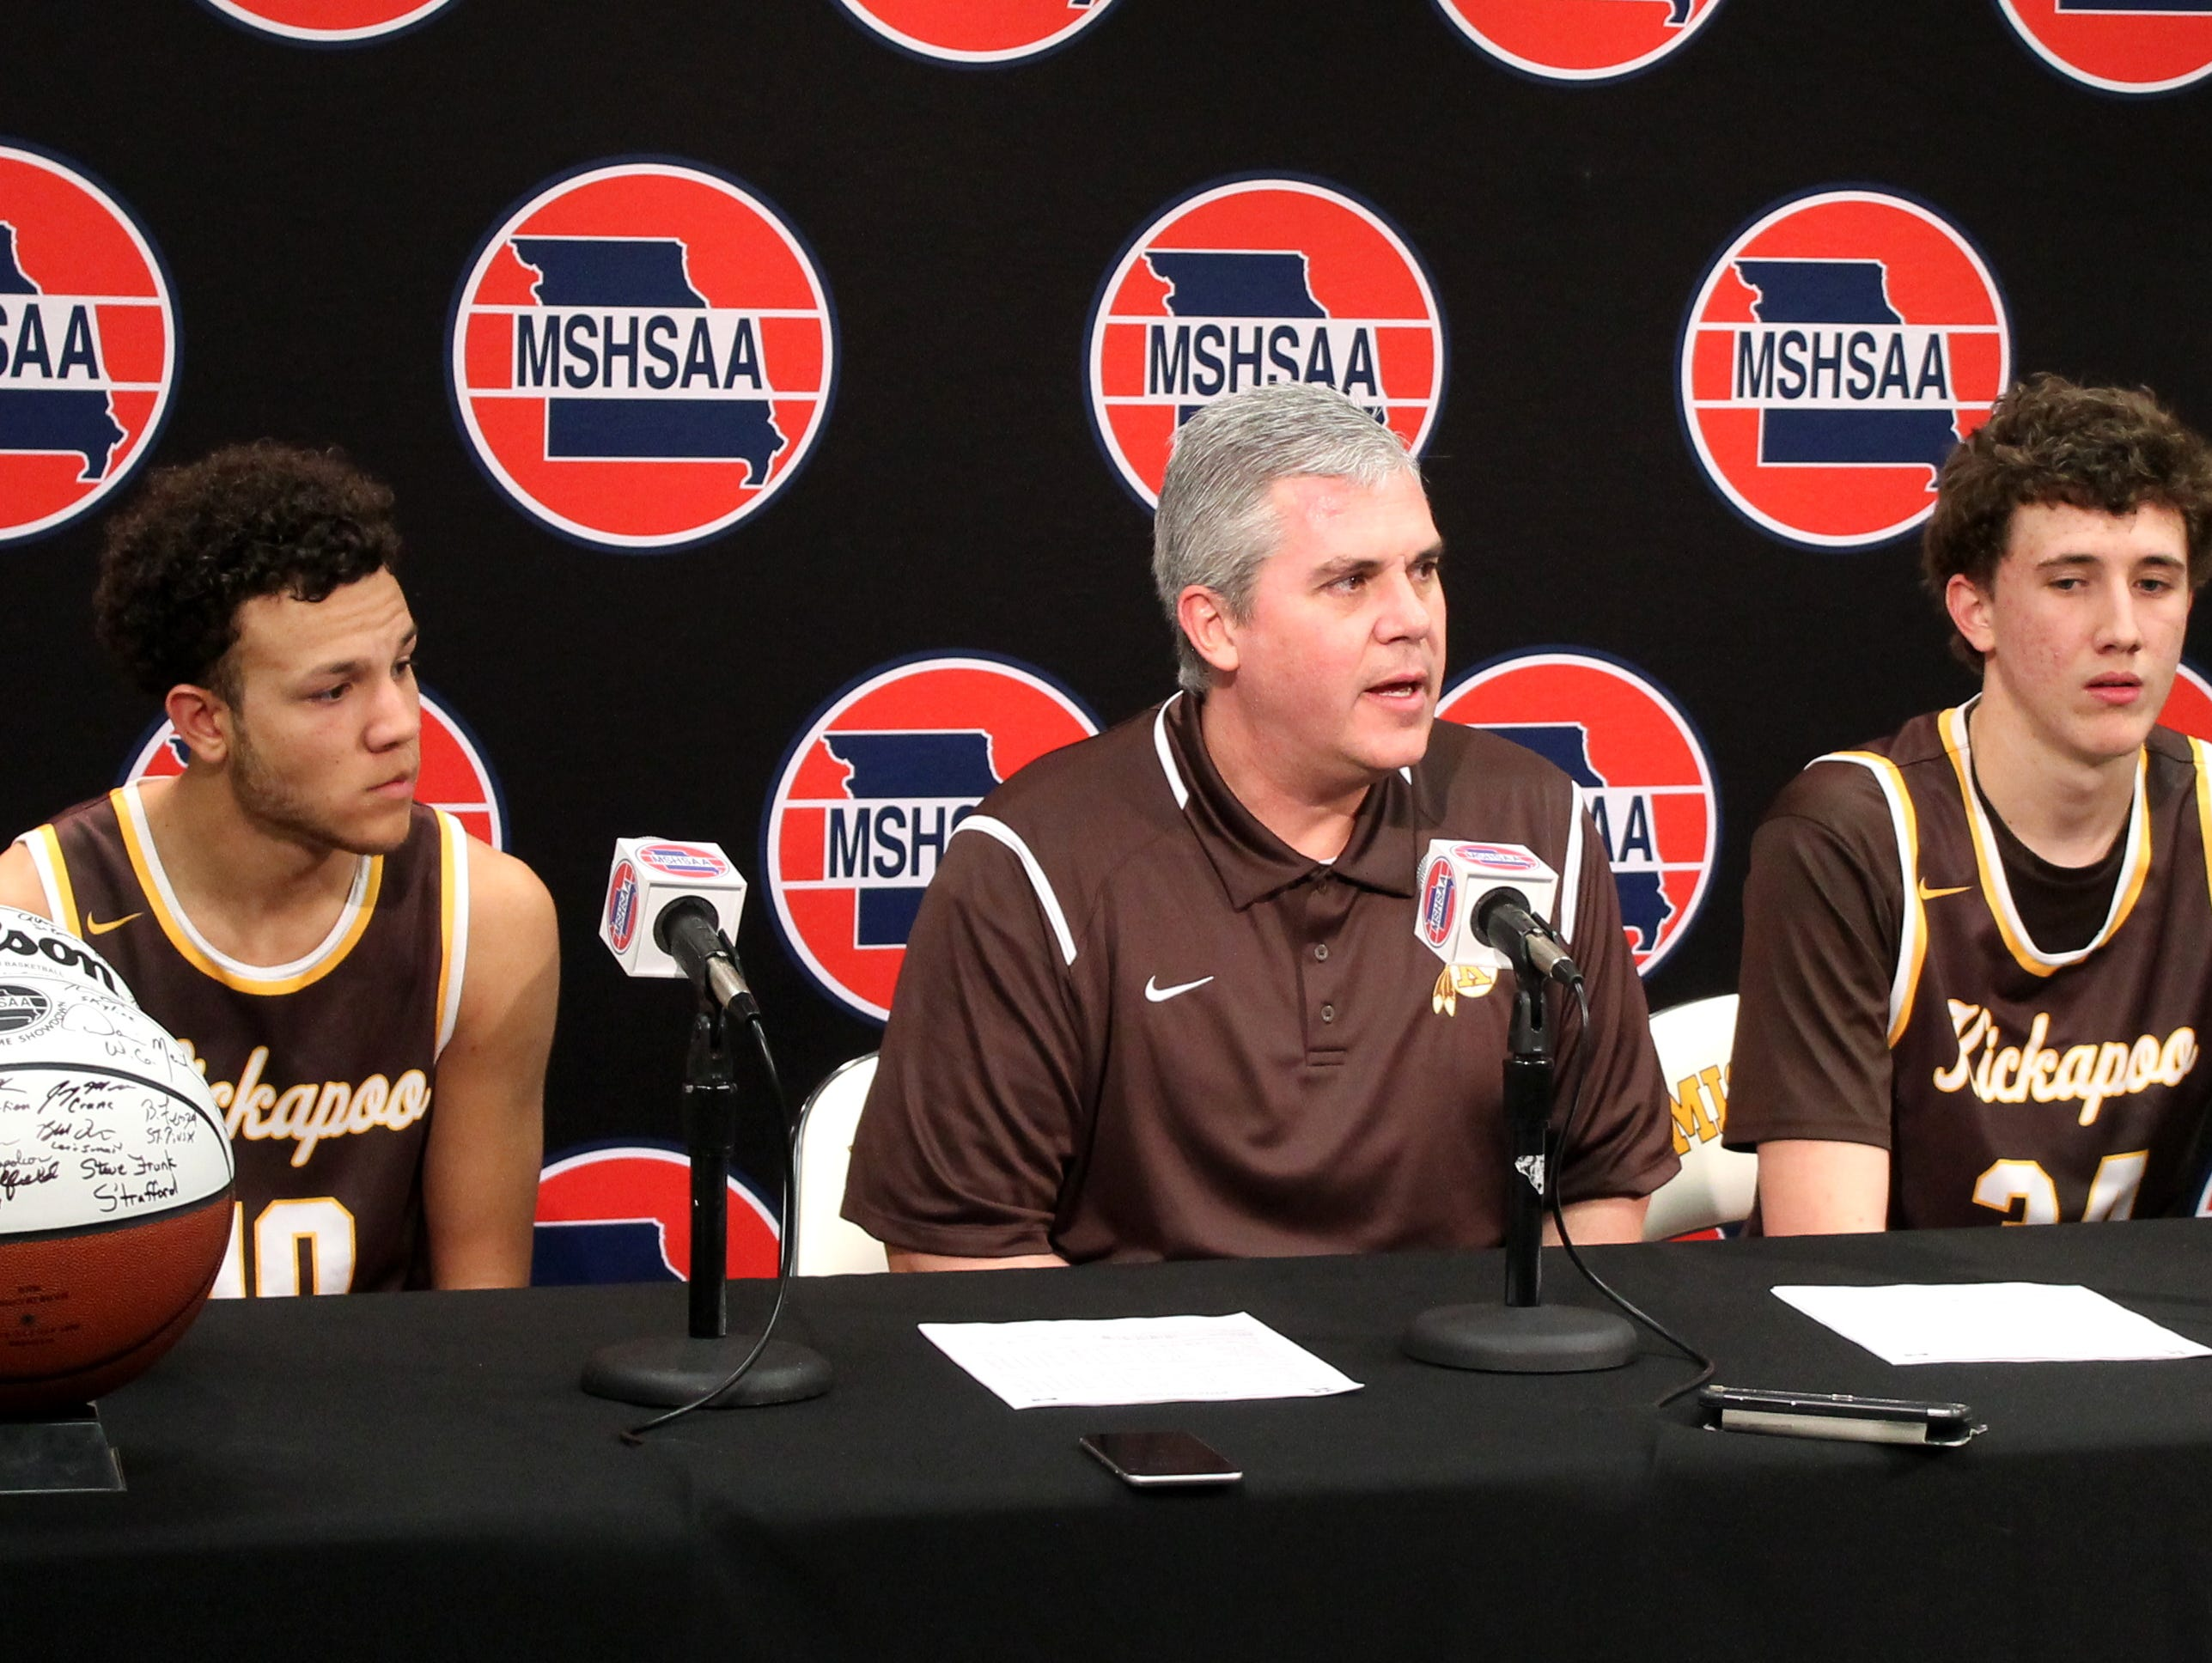 From left, Kickapoo senior Isaac Johnson, boys basketball coach Dick Rippee and junior Jared Ridder address reporters in the media room at Mizzou Arena moments after a 2016 semifinal playoff victory over Lee's Summit.